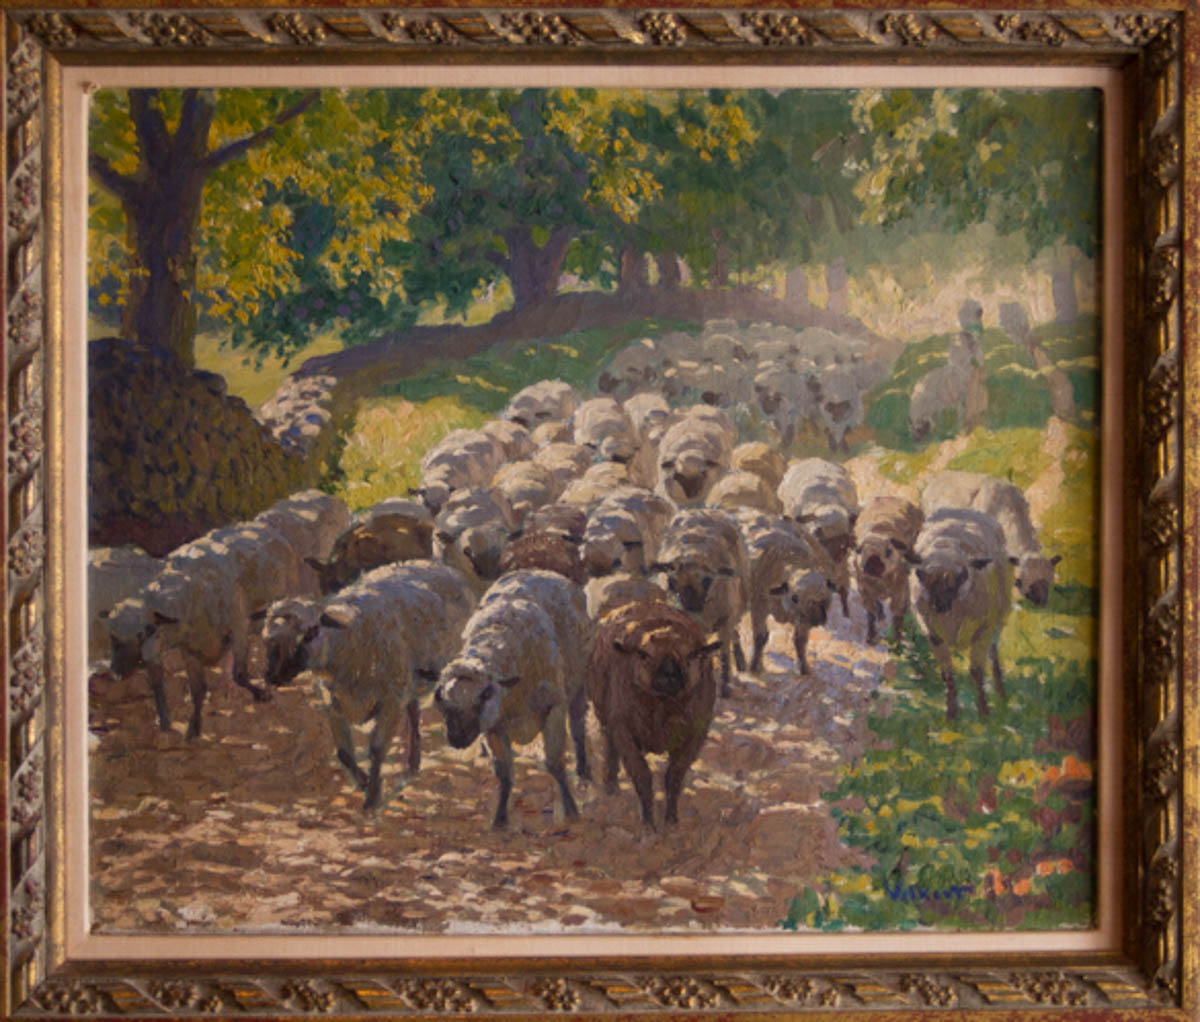 Untitled [Sheep on road with one brown animal in front]